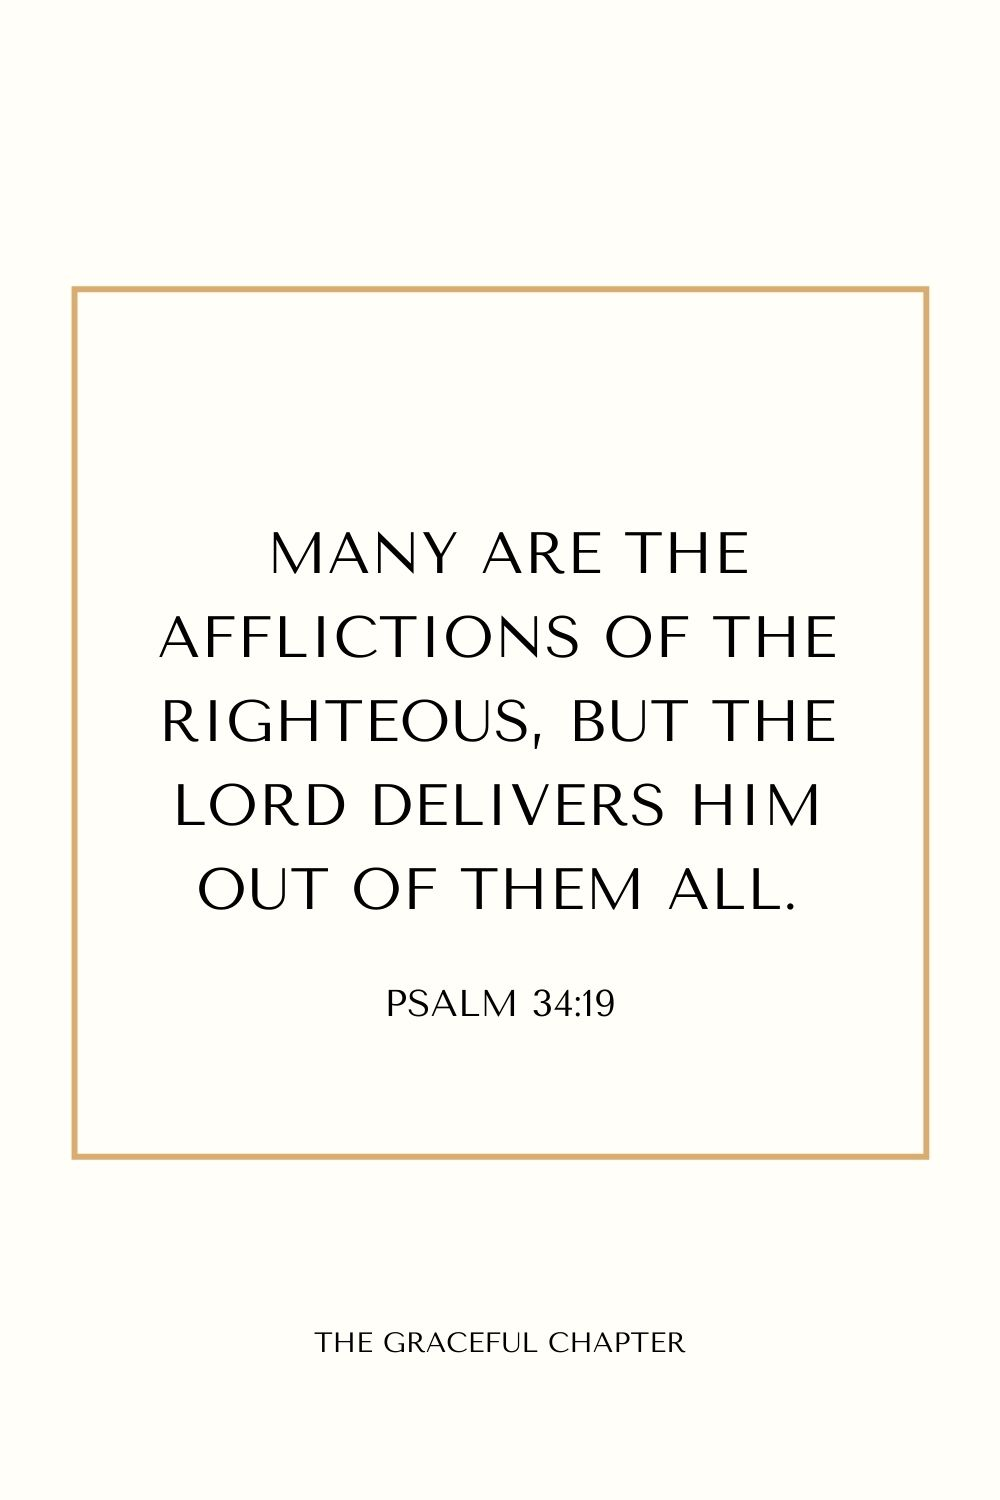 Many are the afflictions of the righteous, But the Lord delivers him out of them all.Psalm 34:19